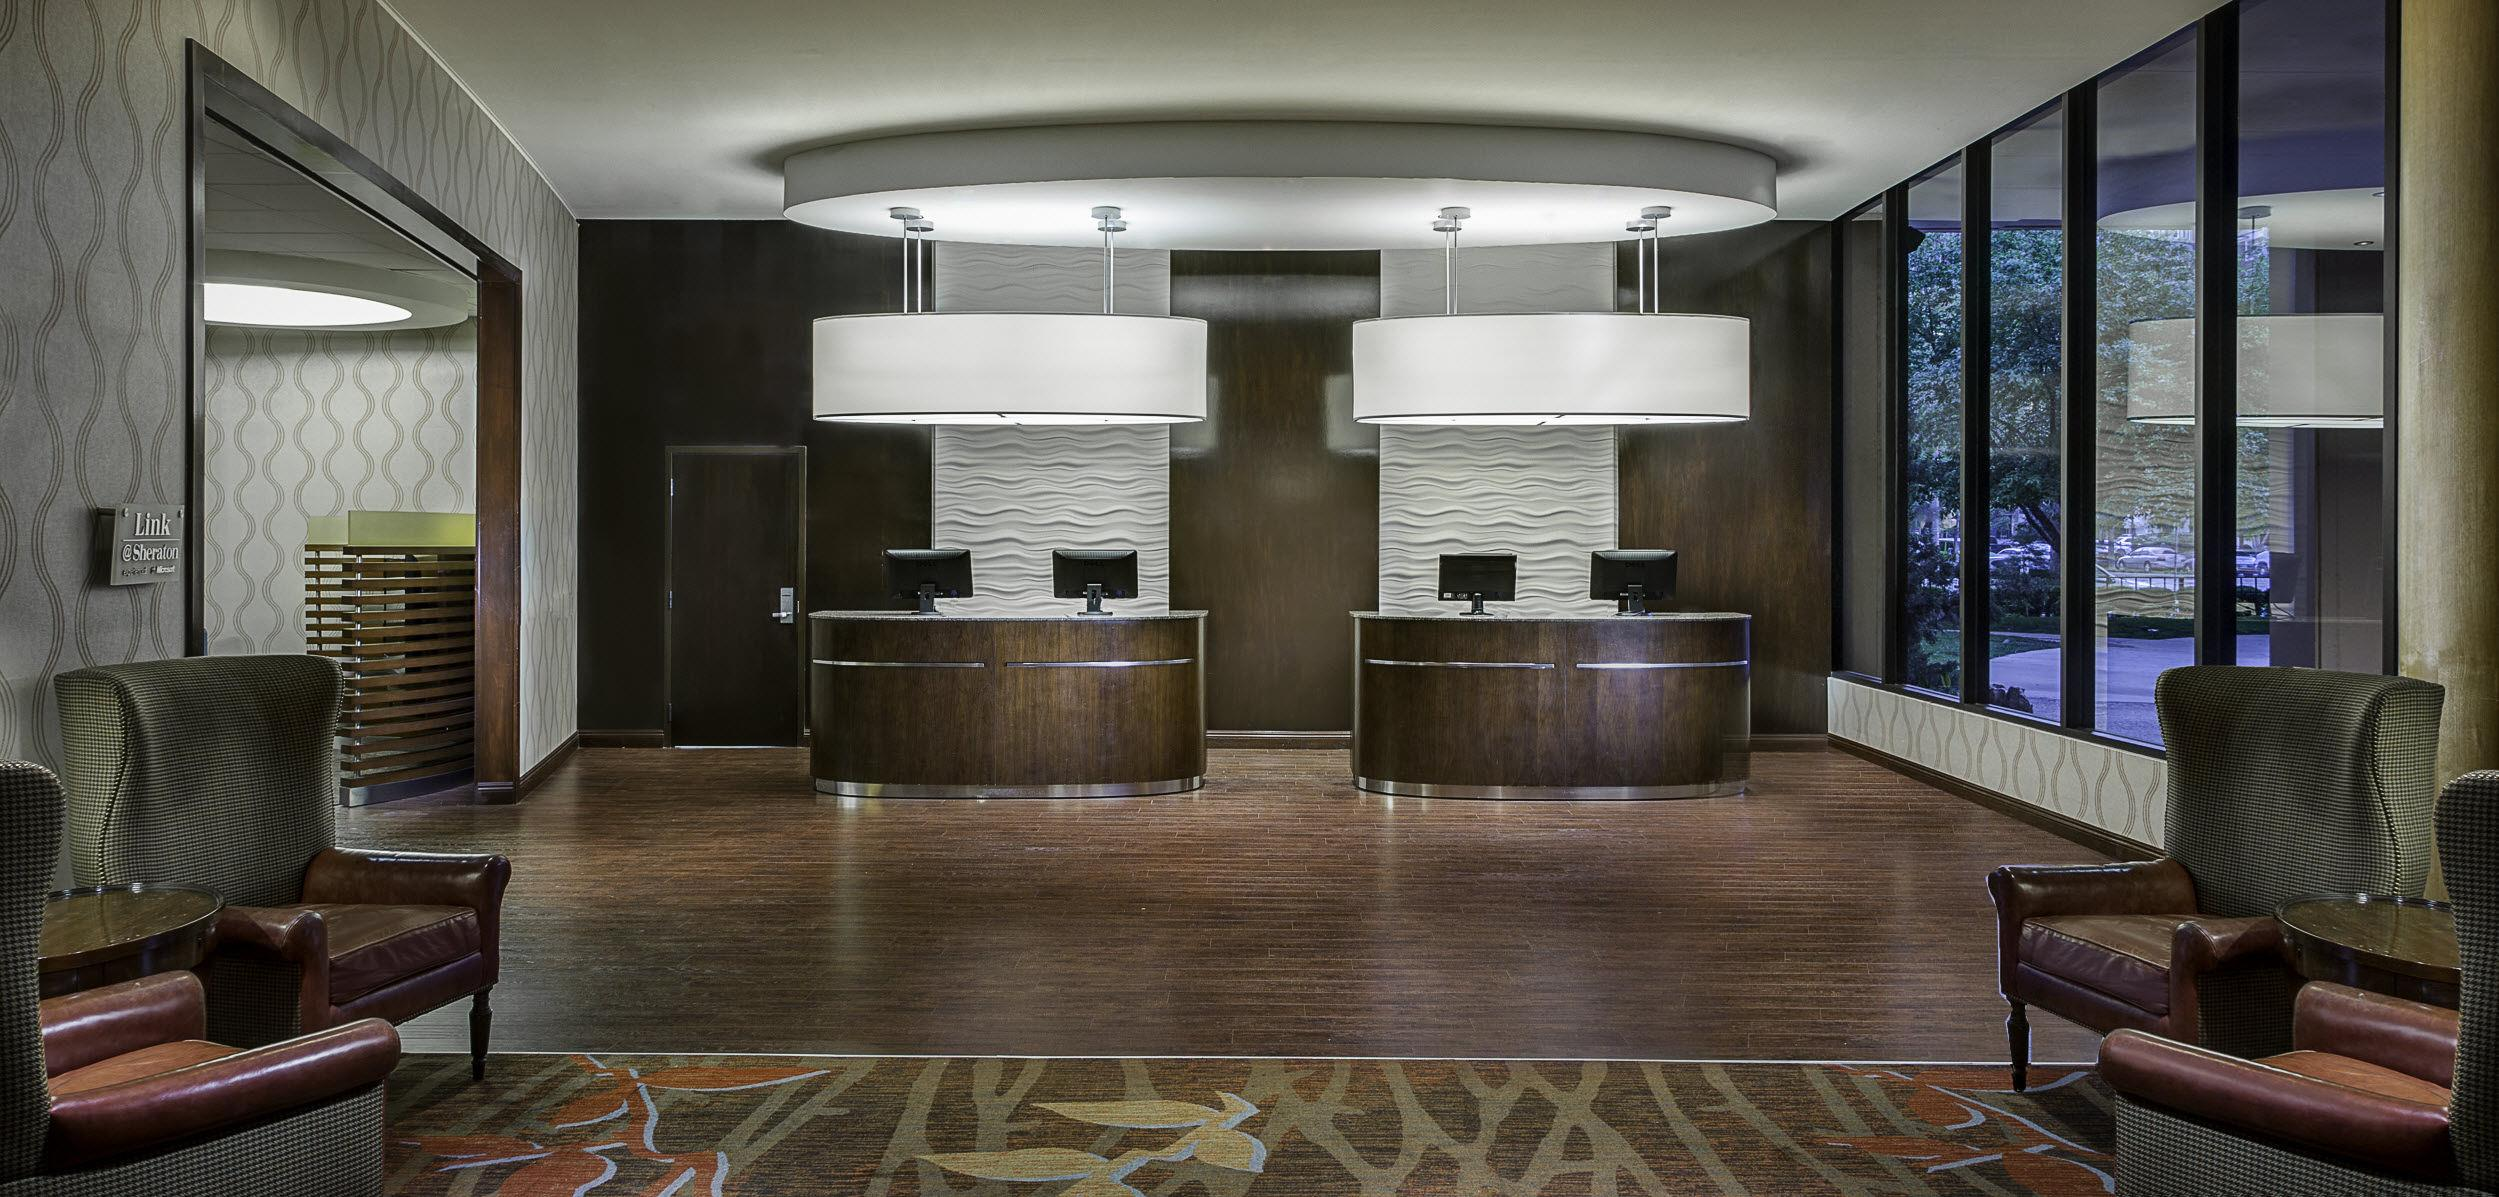 Sheraton Oklahoma City Downtown Hotel image 1